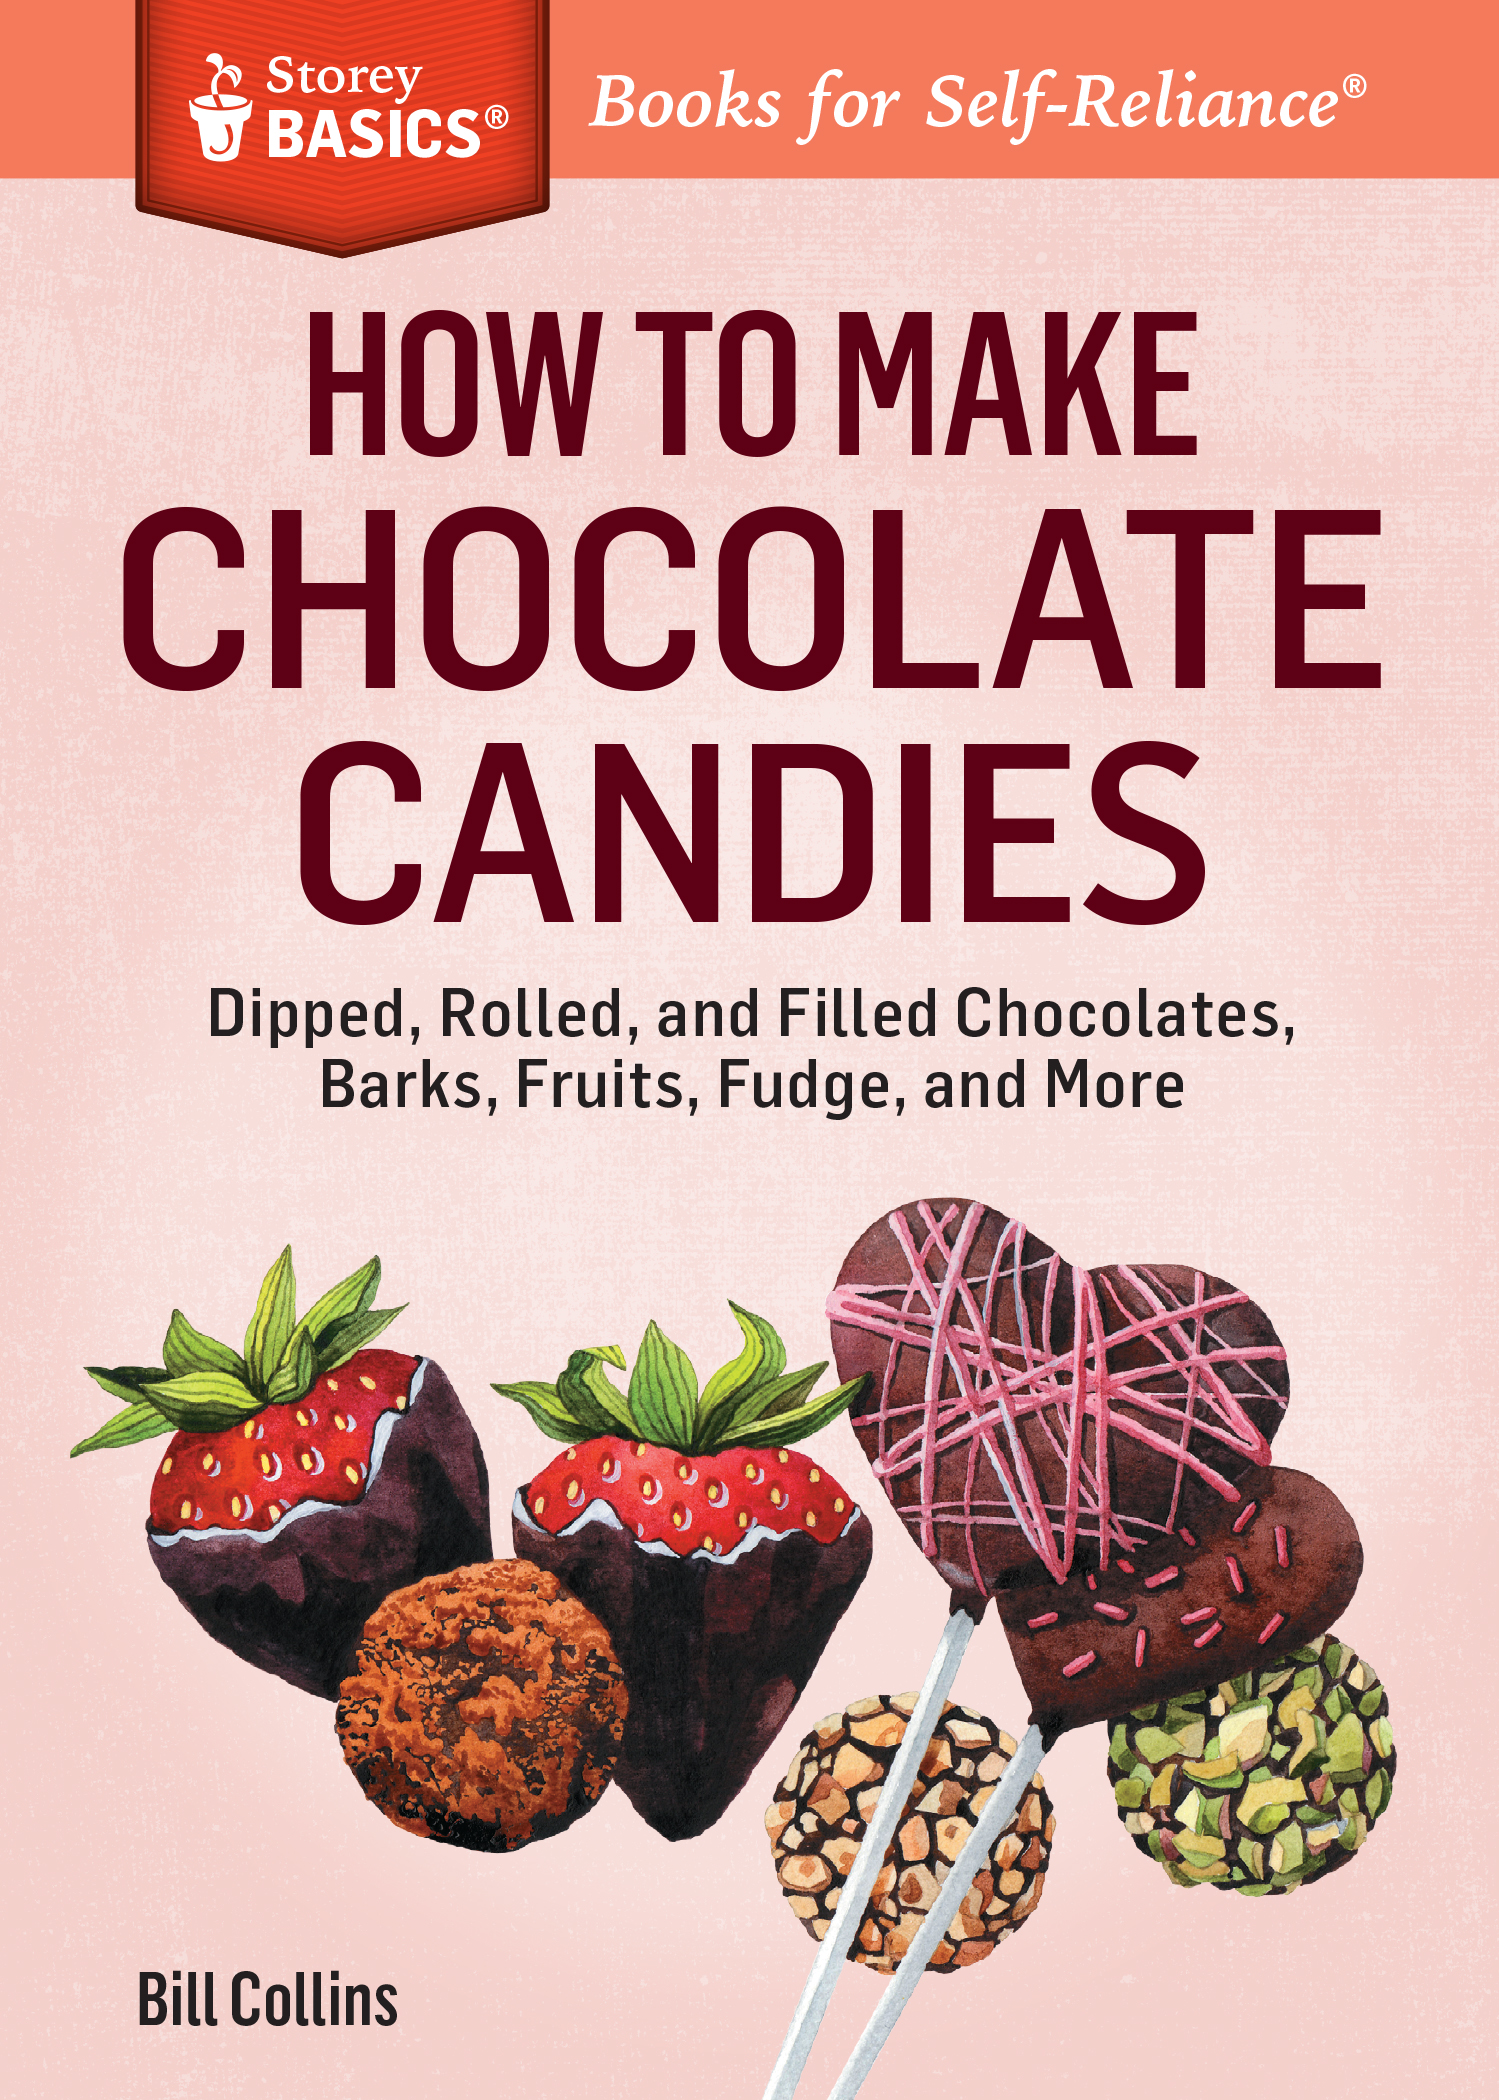 How to Make Chocolate Candies Dipped, Rolled, and Filled Chocolates, Barks, Fruits, Fudge, and More. A Storey BASICS® Title - Bill Collins